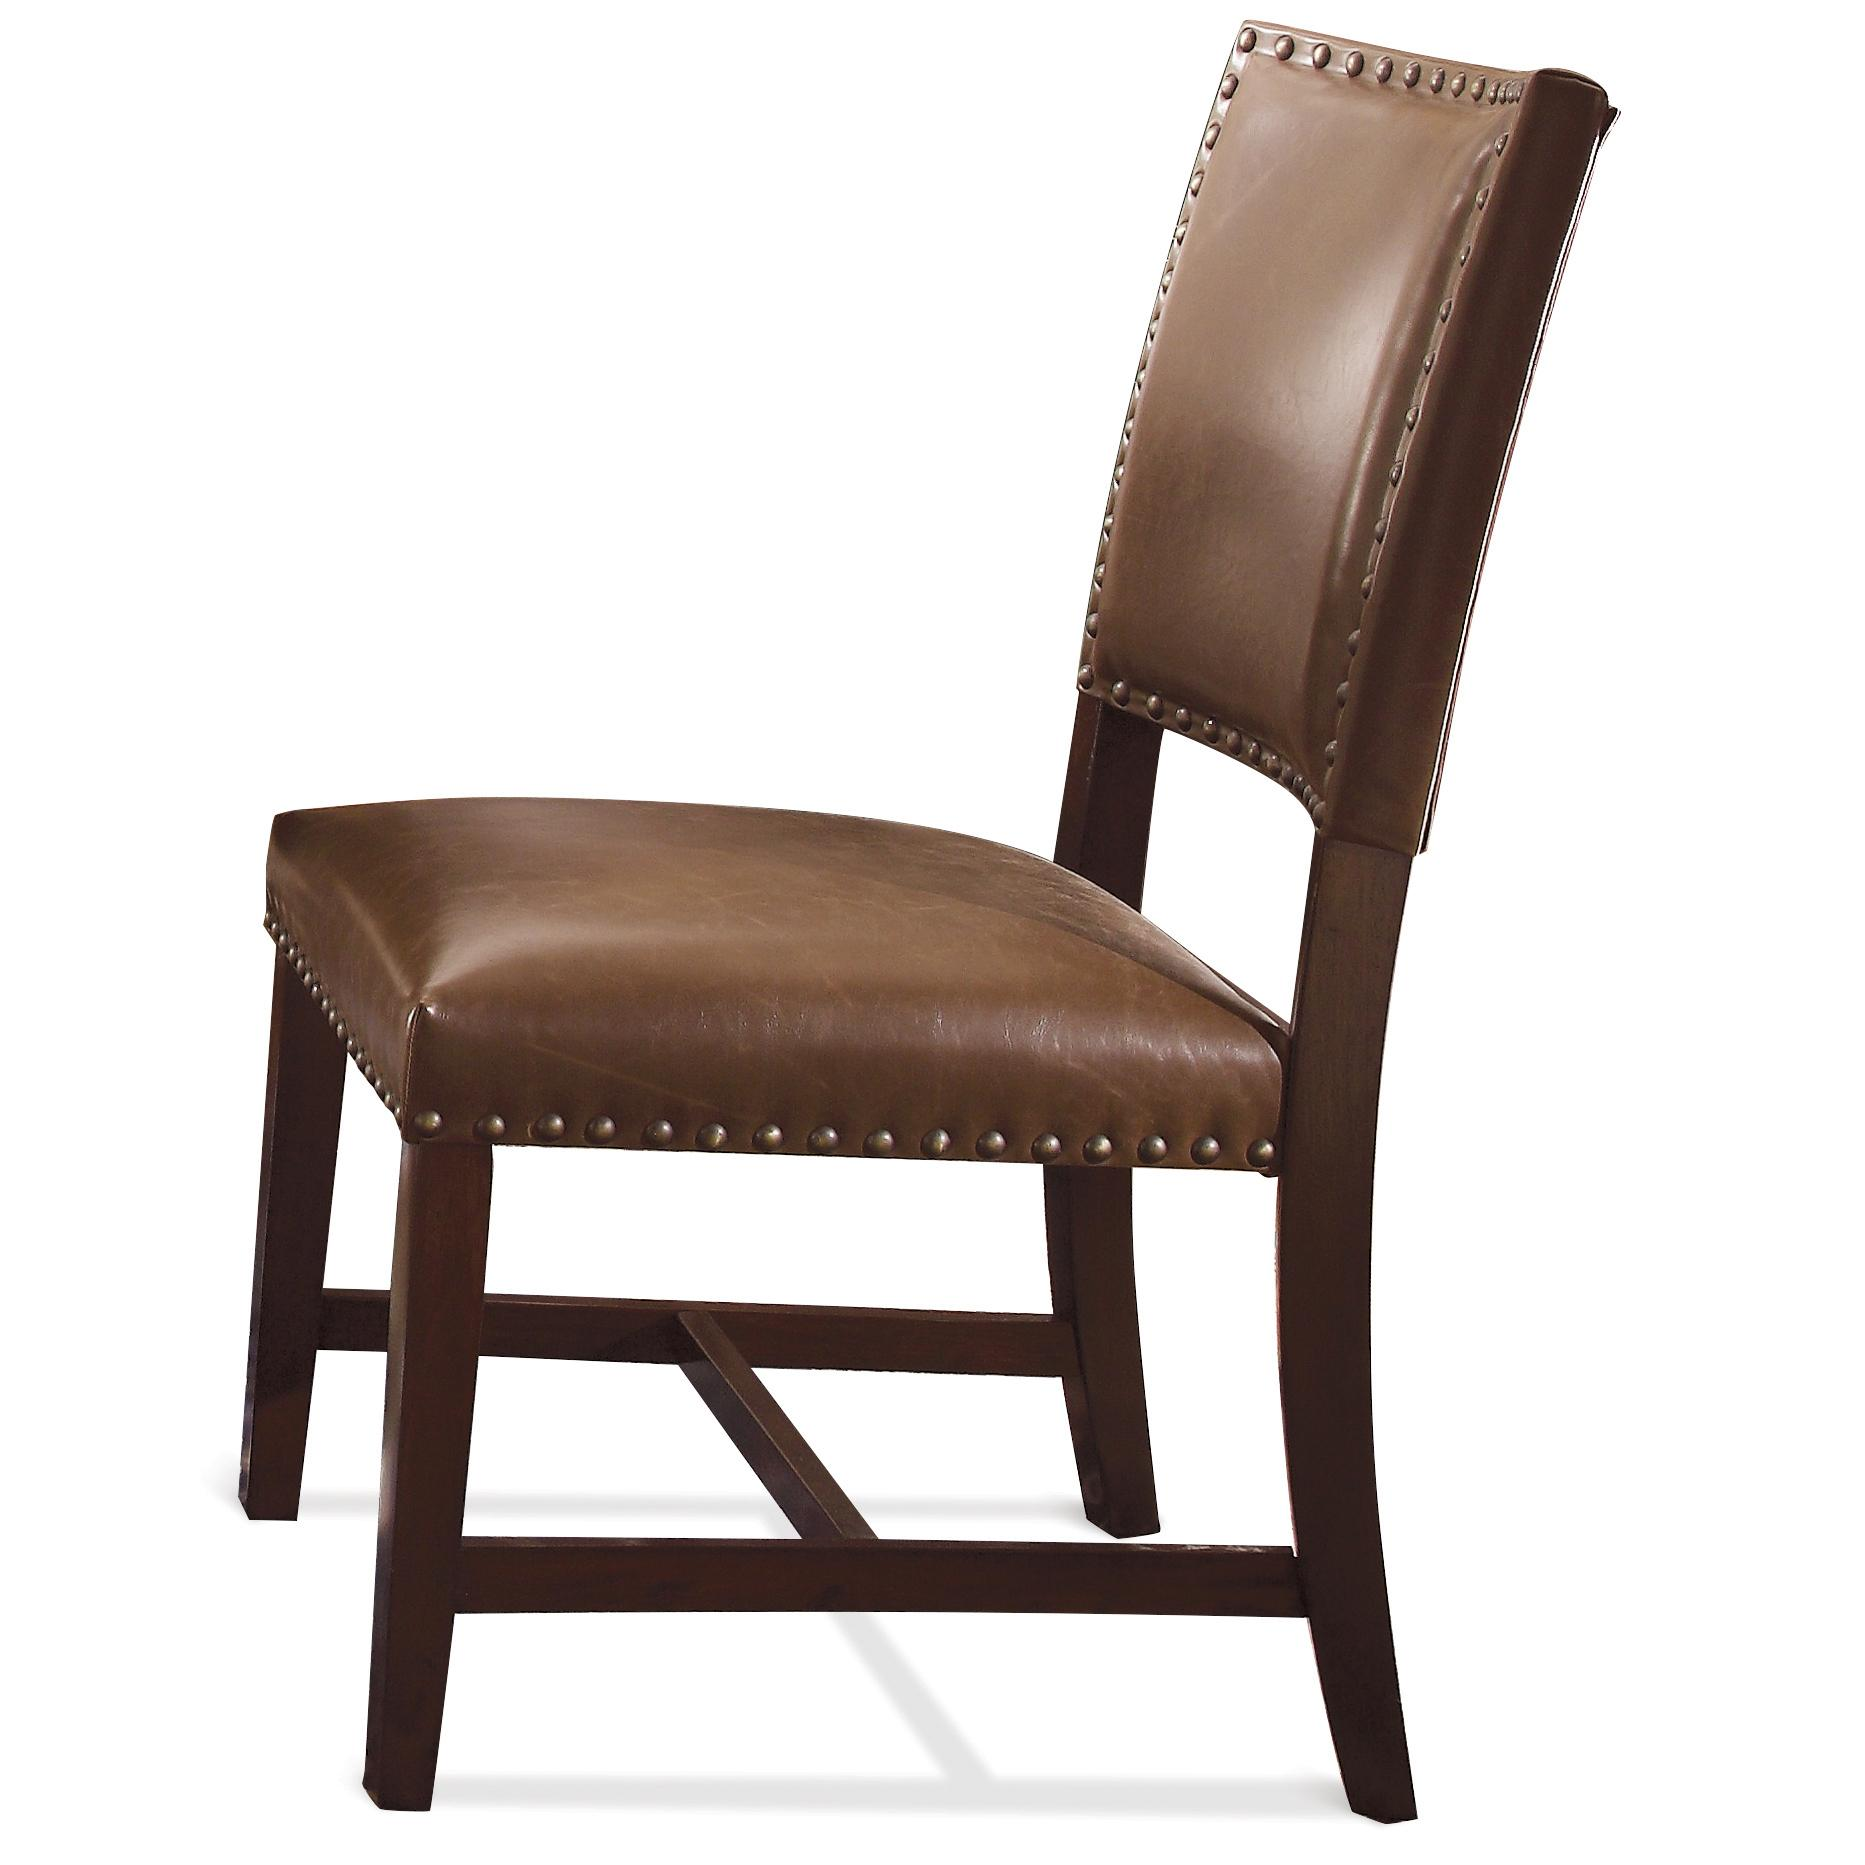 Riverside Furniture Mix-N-Match Chairs Bonded Leather Uph Parson Chair - Item Number: 36665